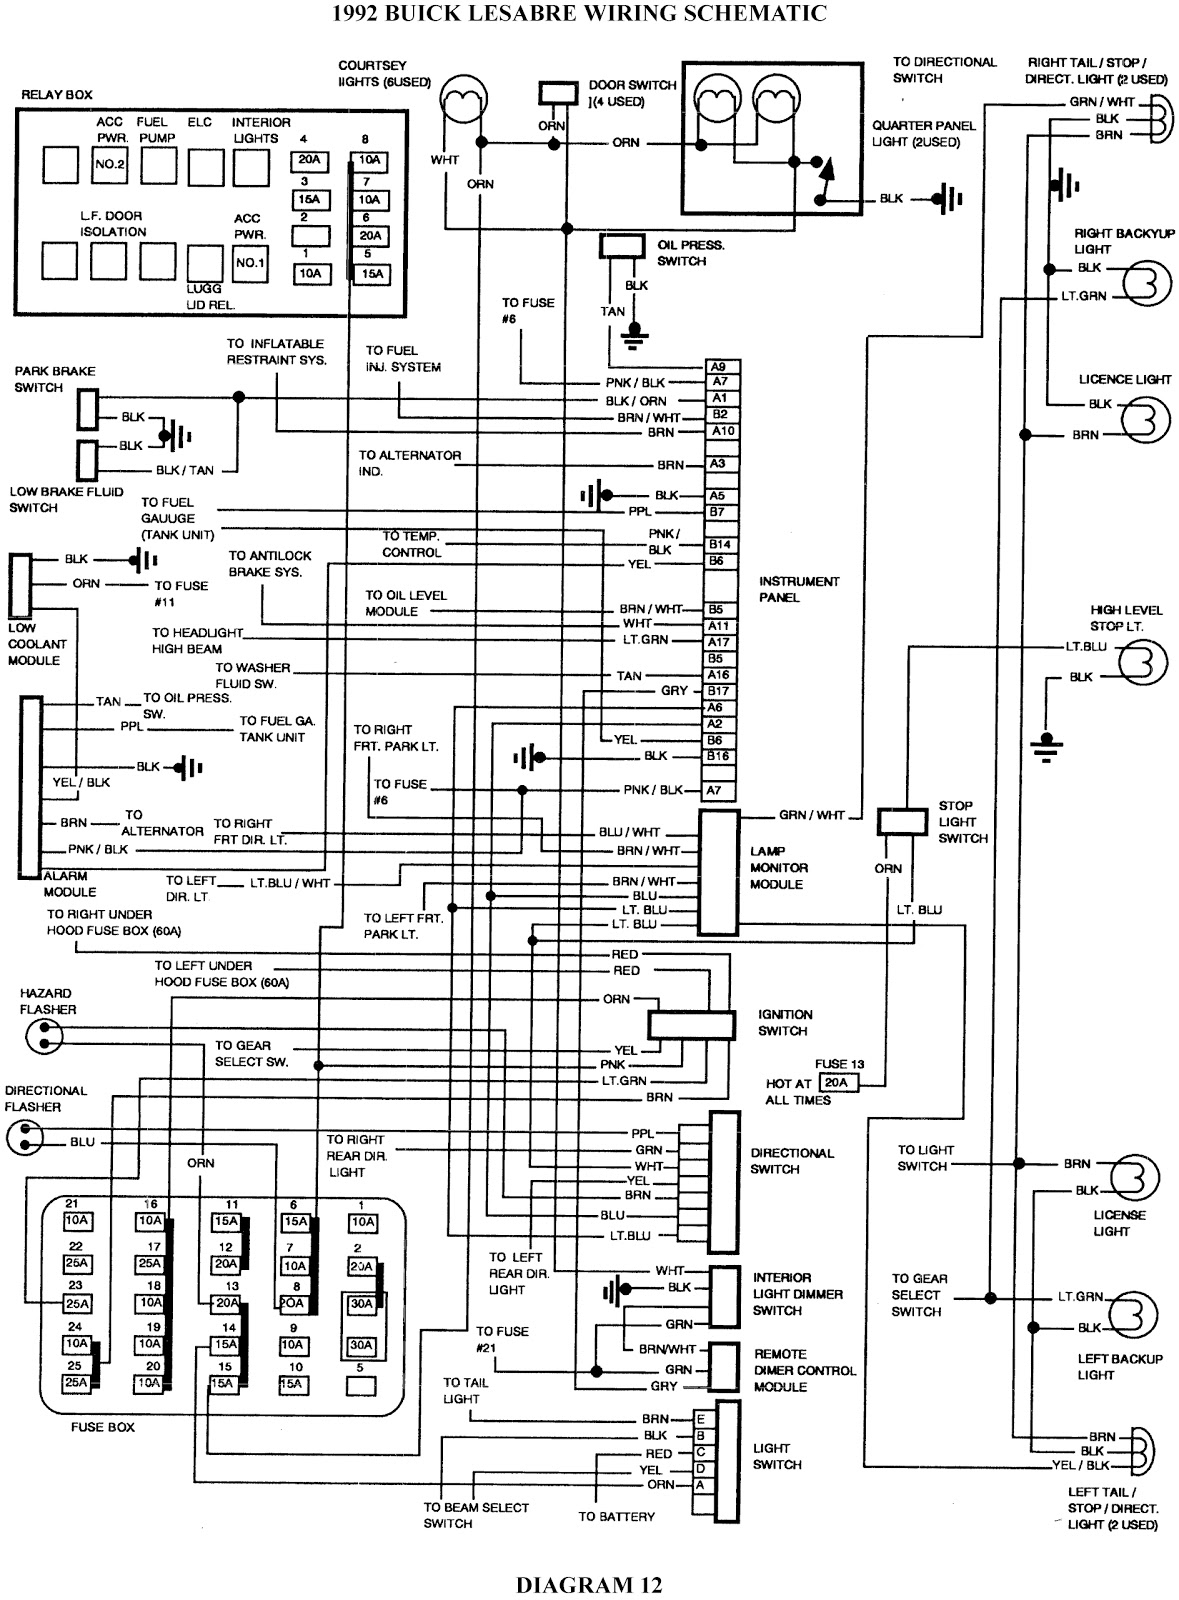 2011 Buick Regal Wiring Diagram 2011 Automotive Wiring Diagrams – 2012 Buick Enclave Wiring Diagram